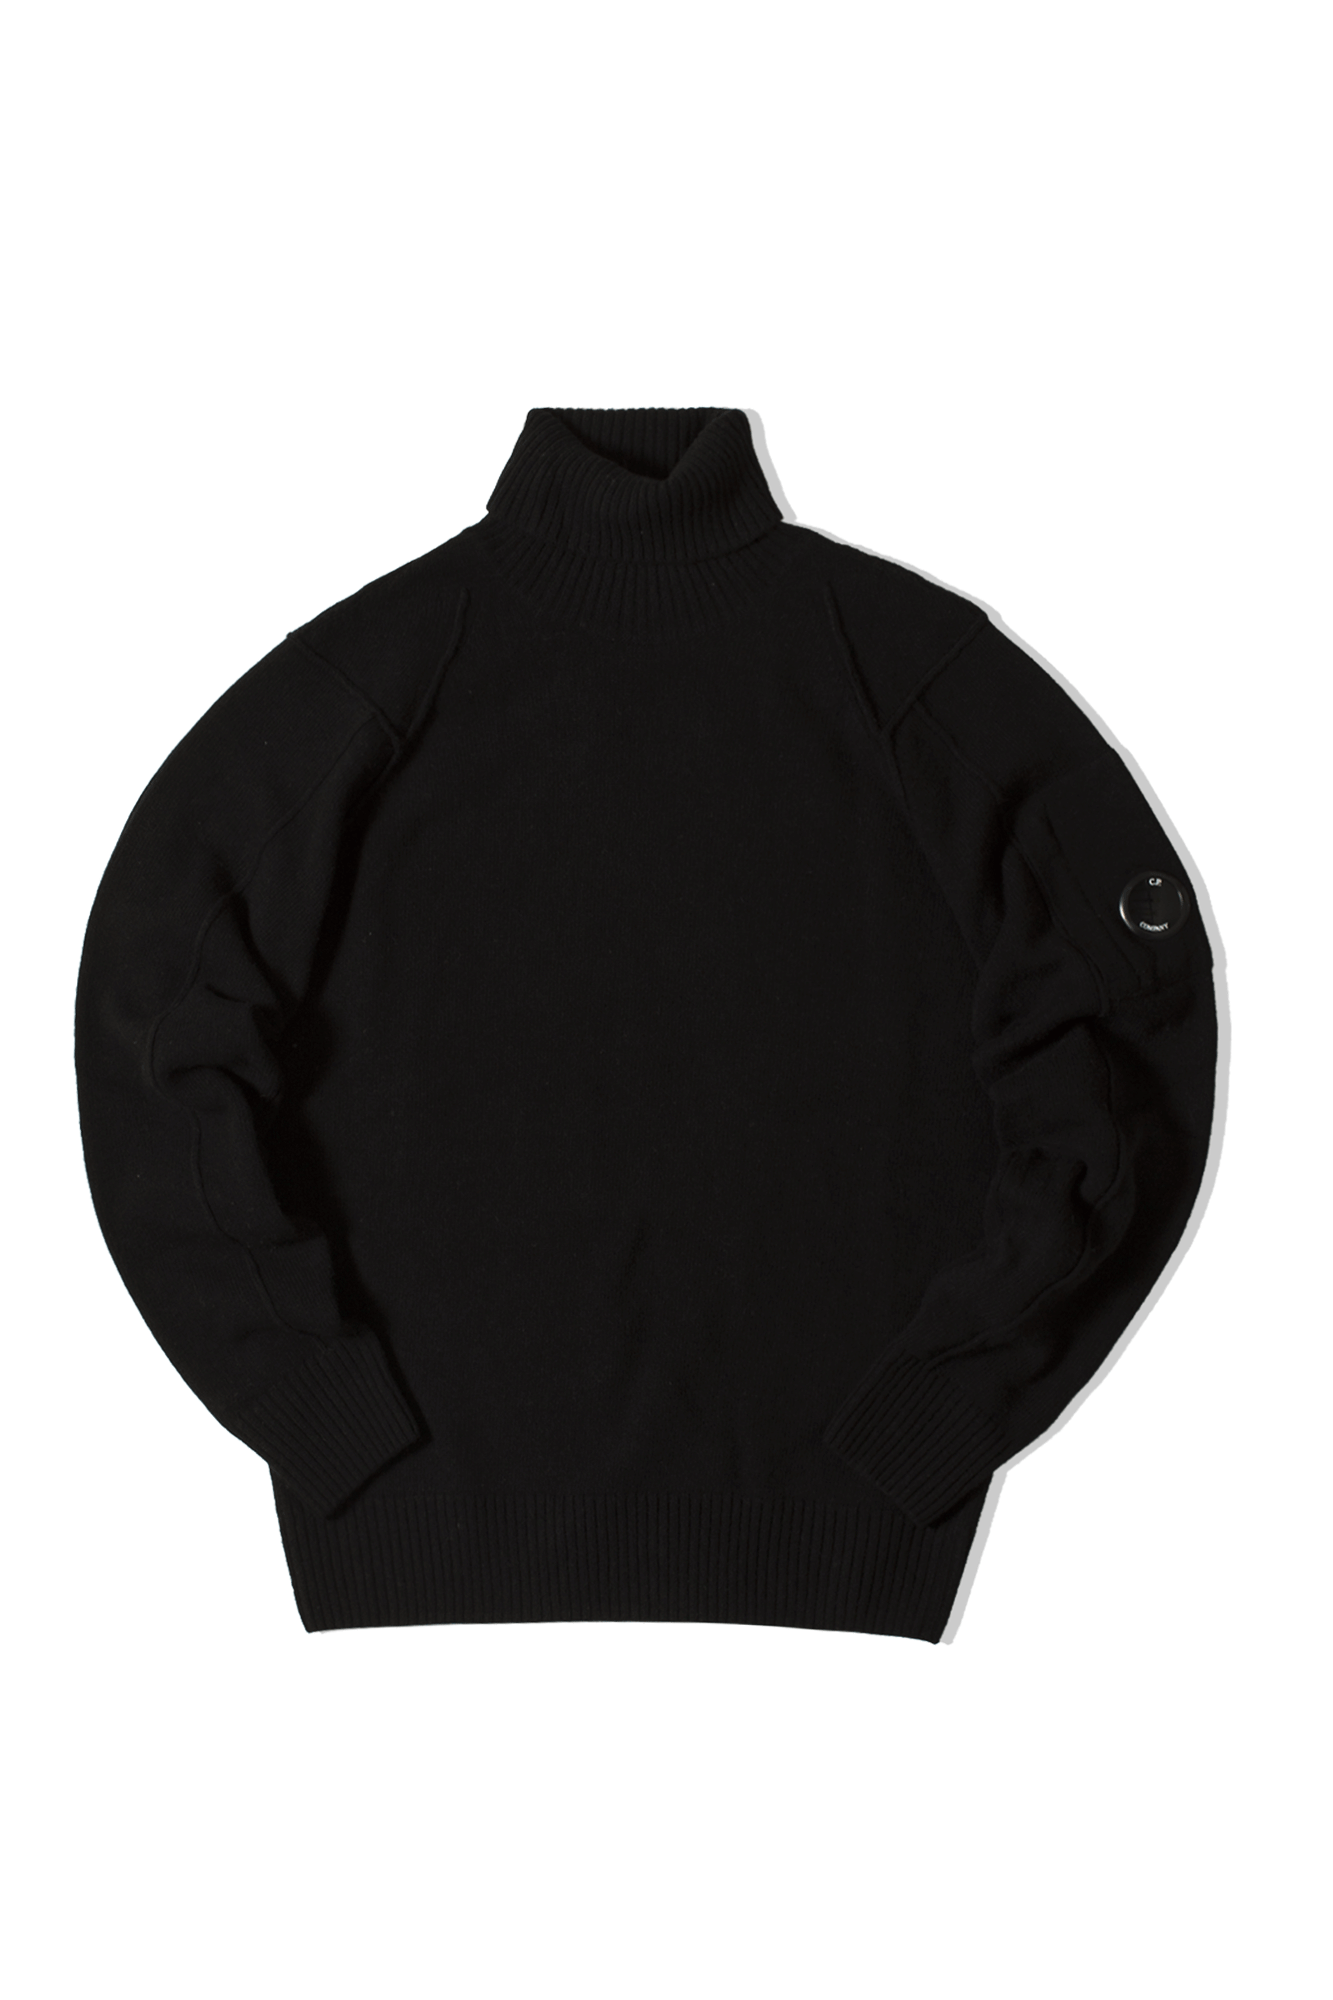 TURTLE NECK Black